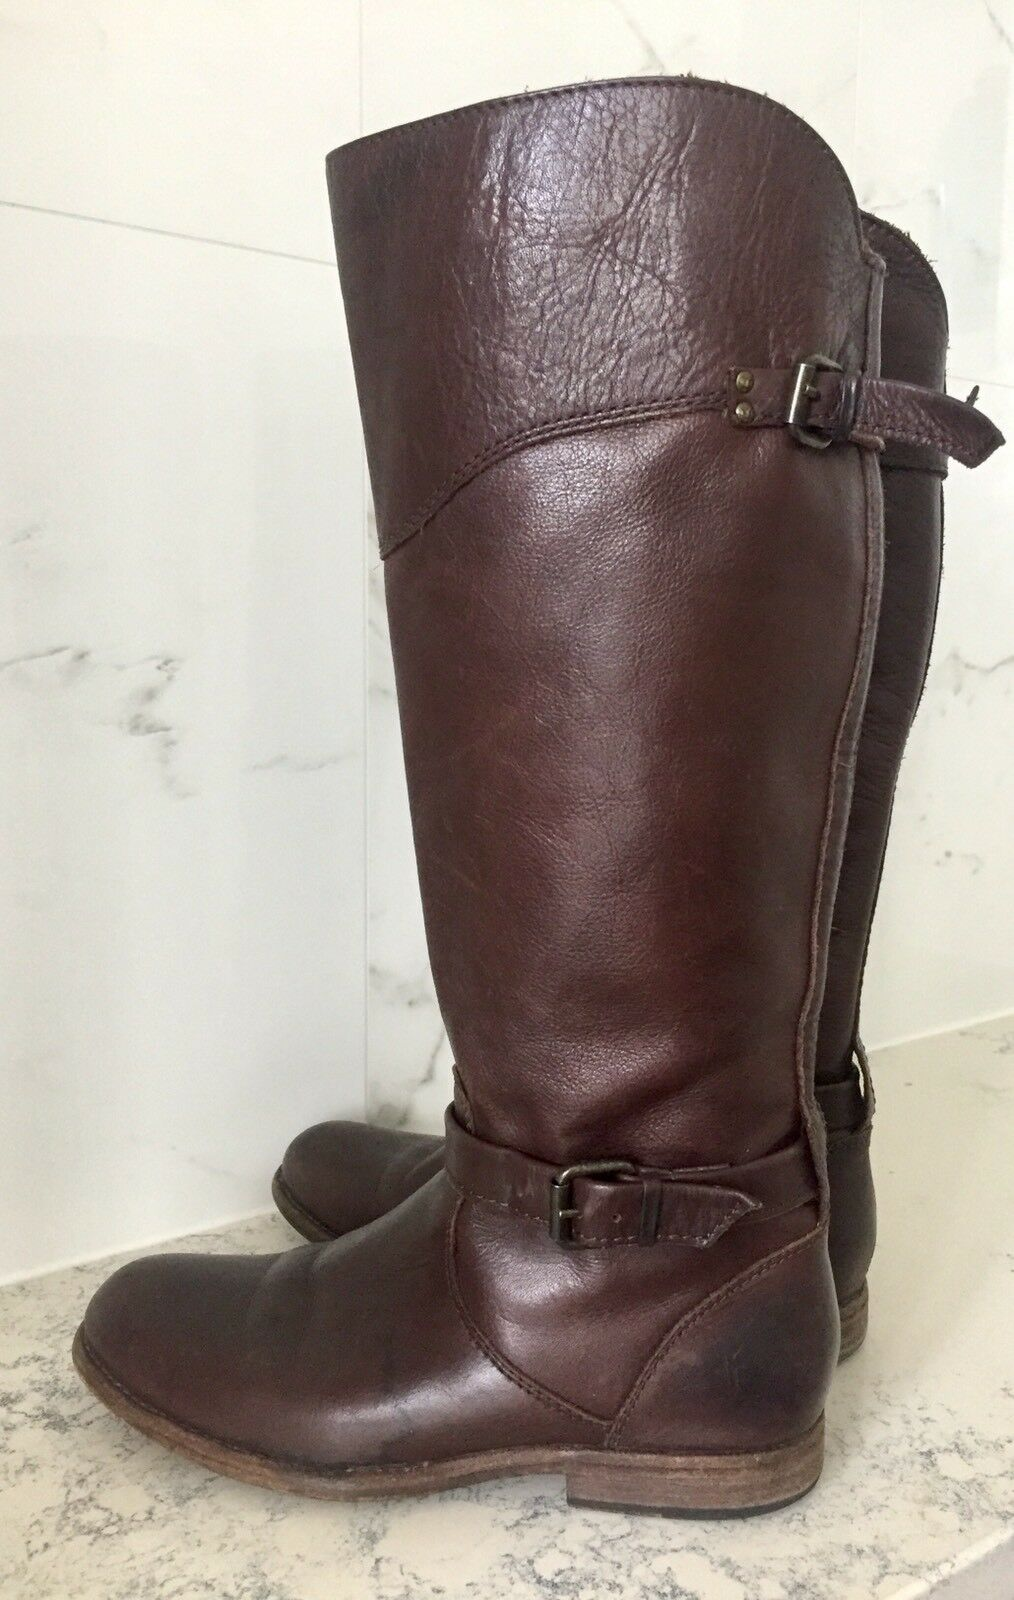 $400 FRYE Phillip Riding Tall Boot Buckle Brown Leather EXTENDED CALF Sz 8